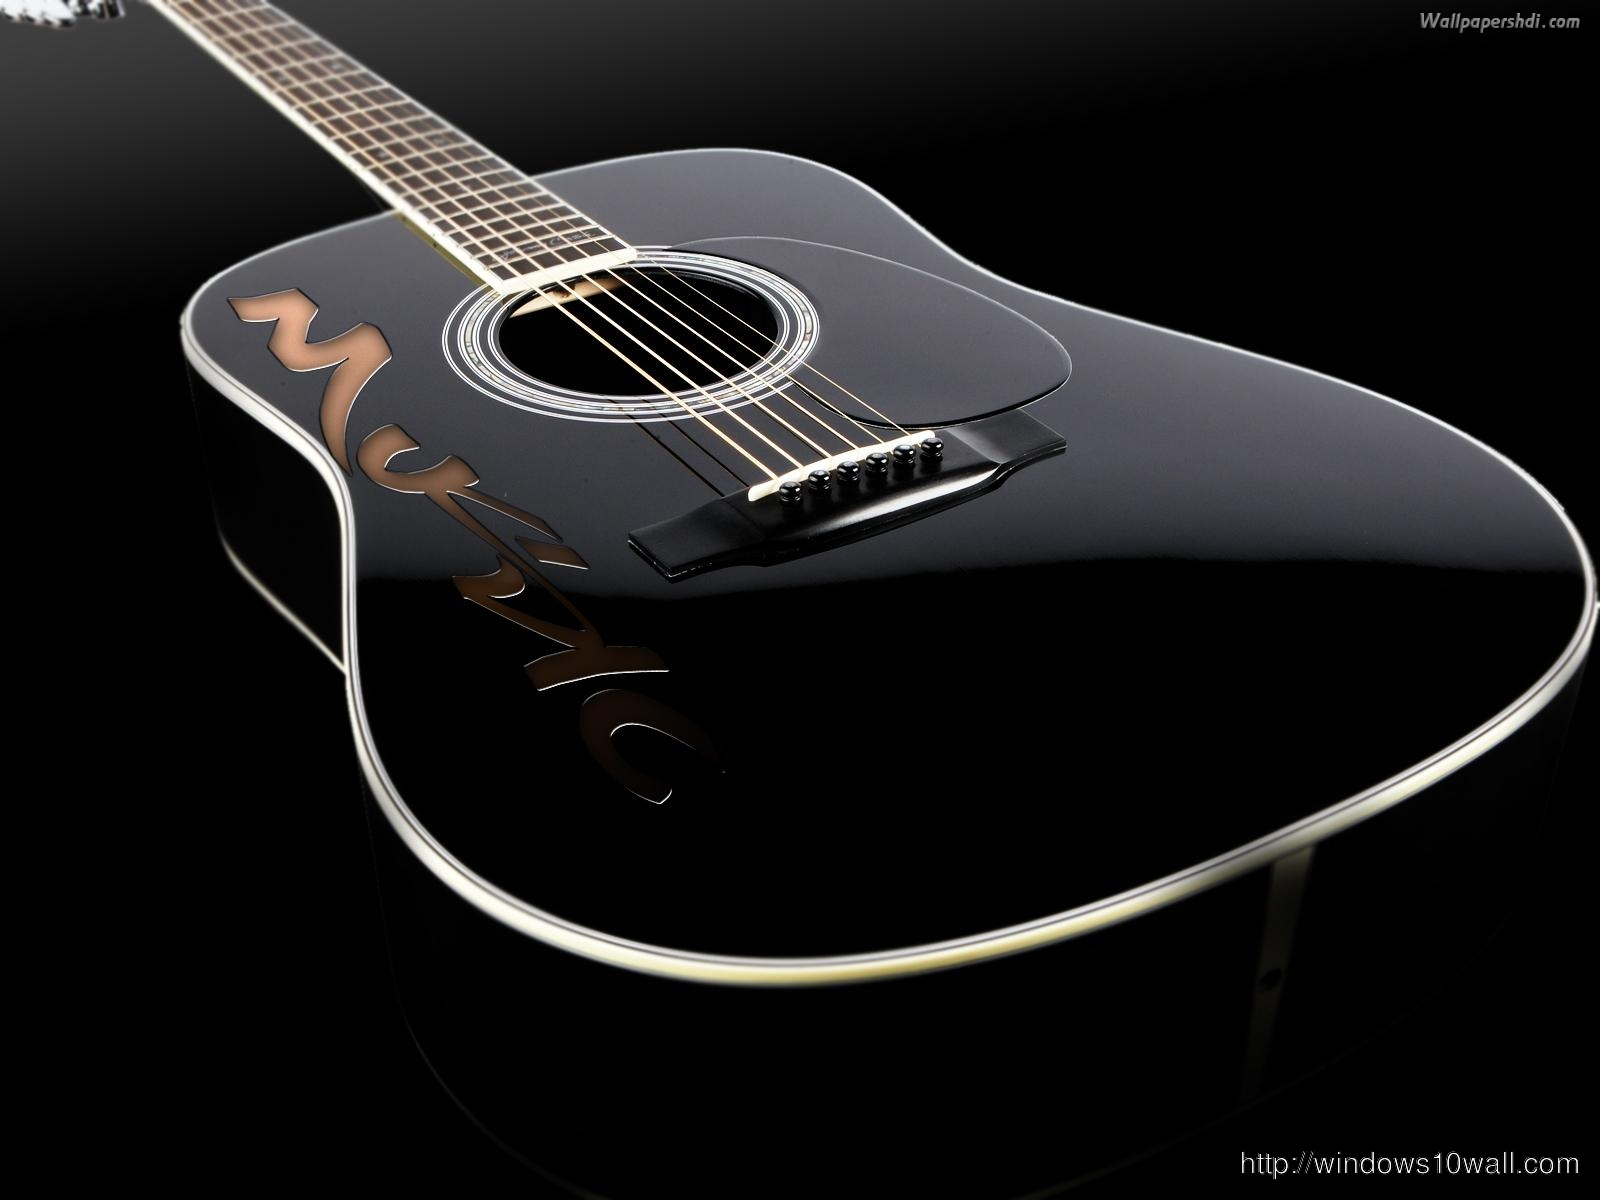 Guitar wallpaper Black Background Pic